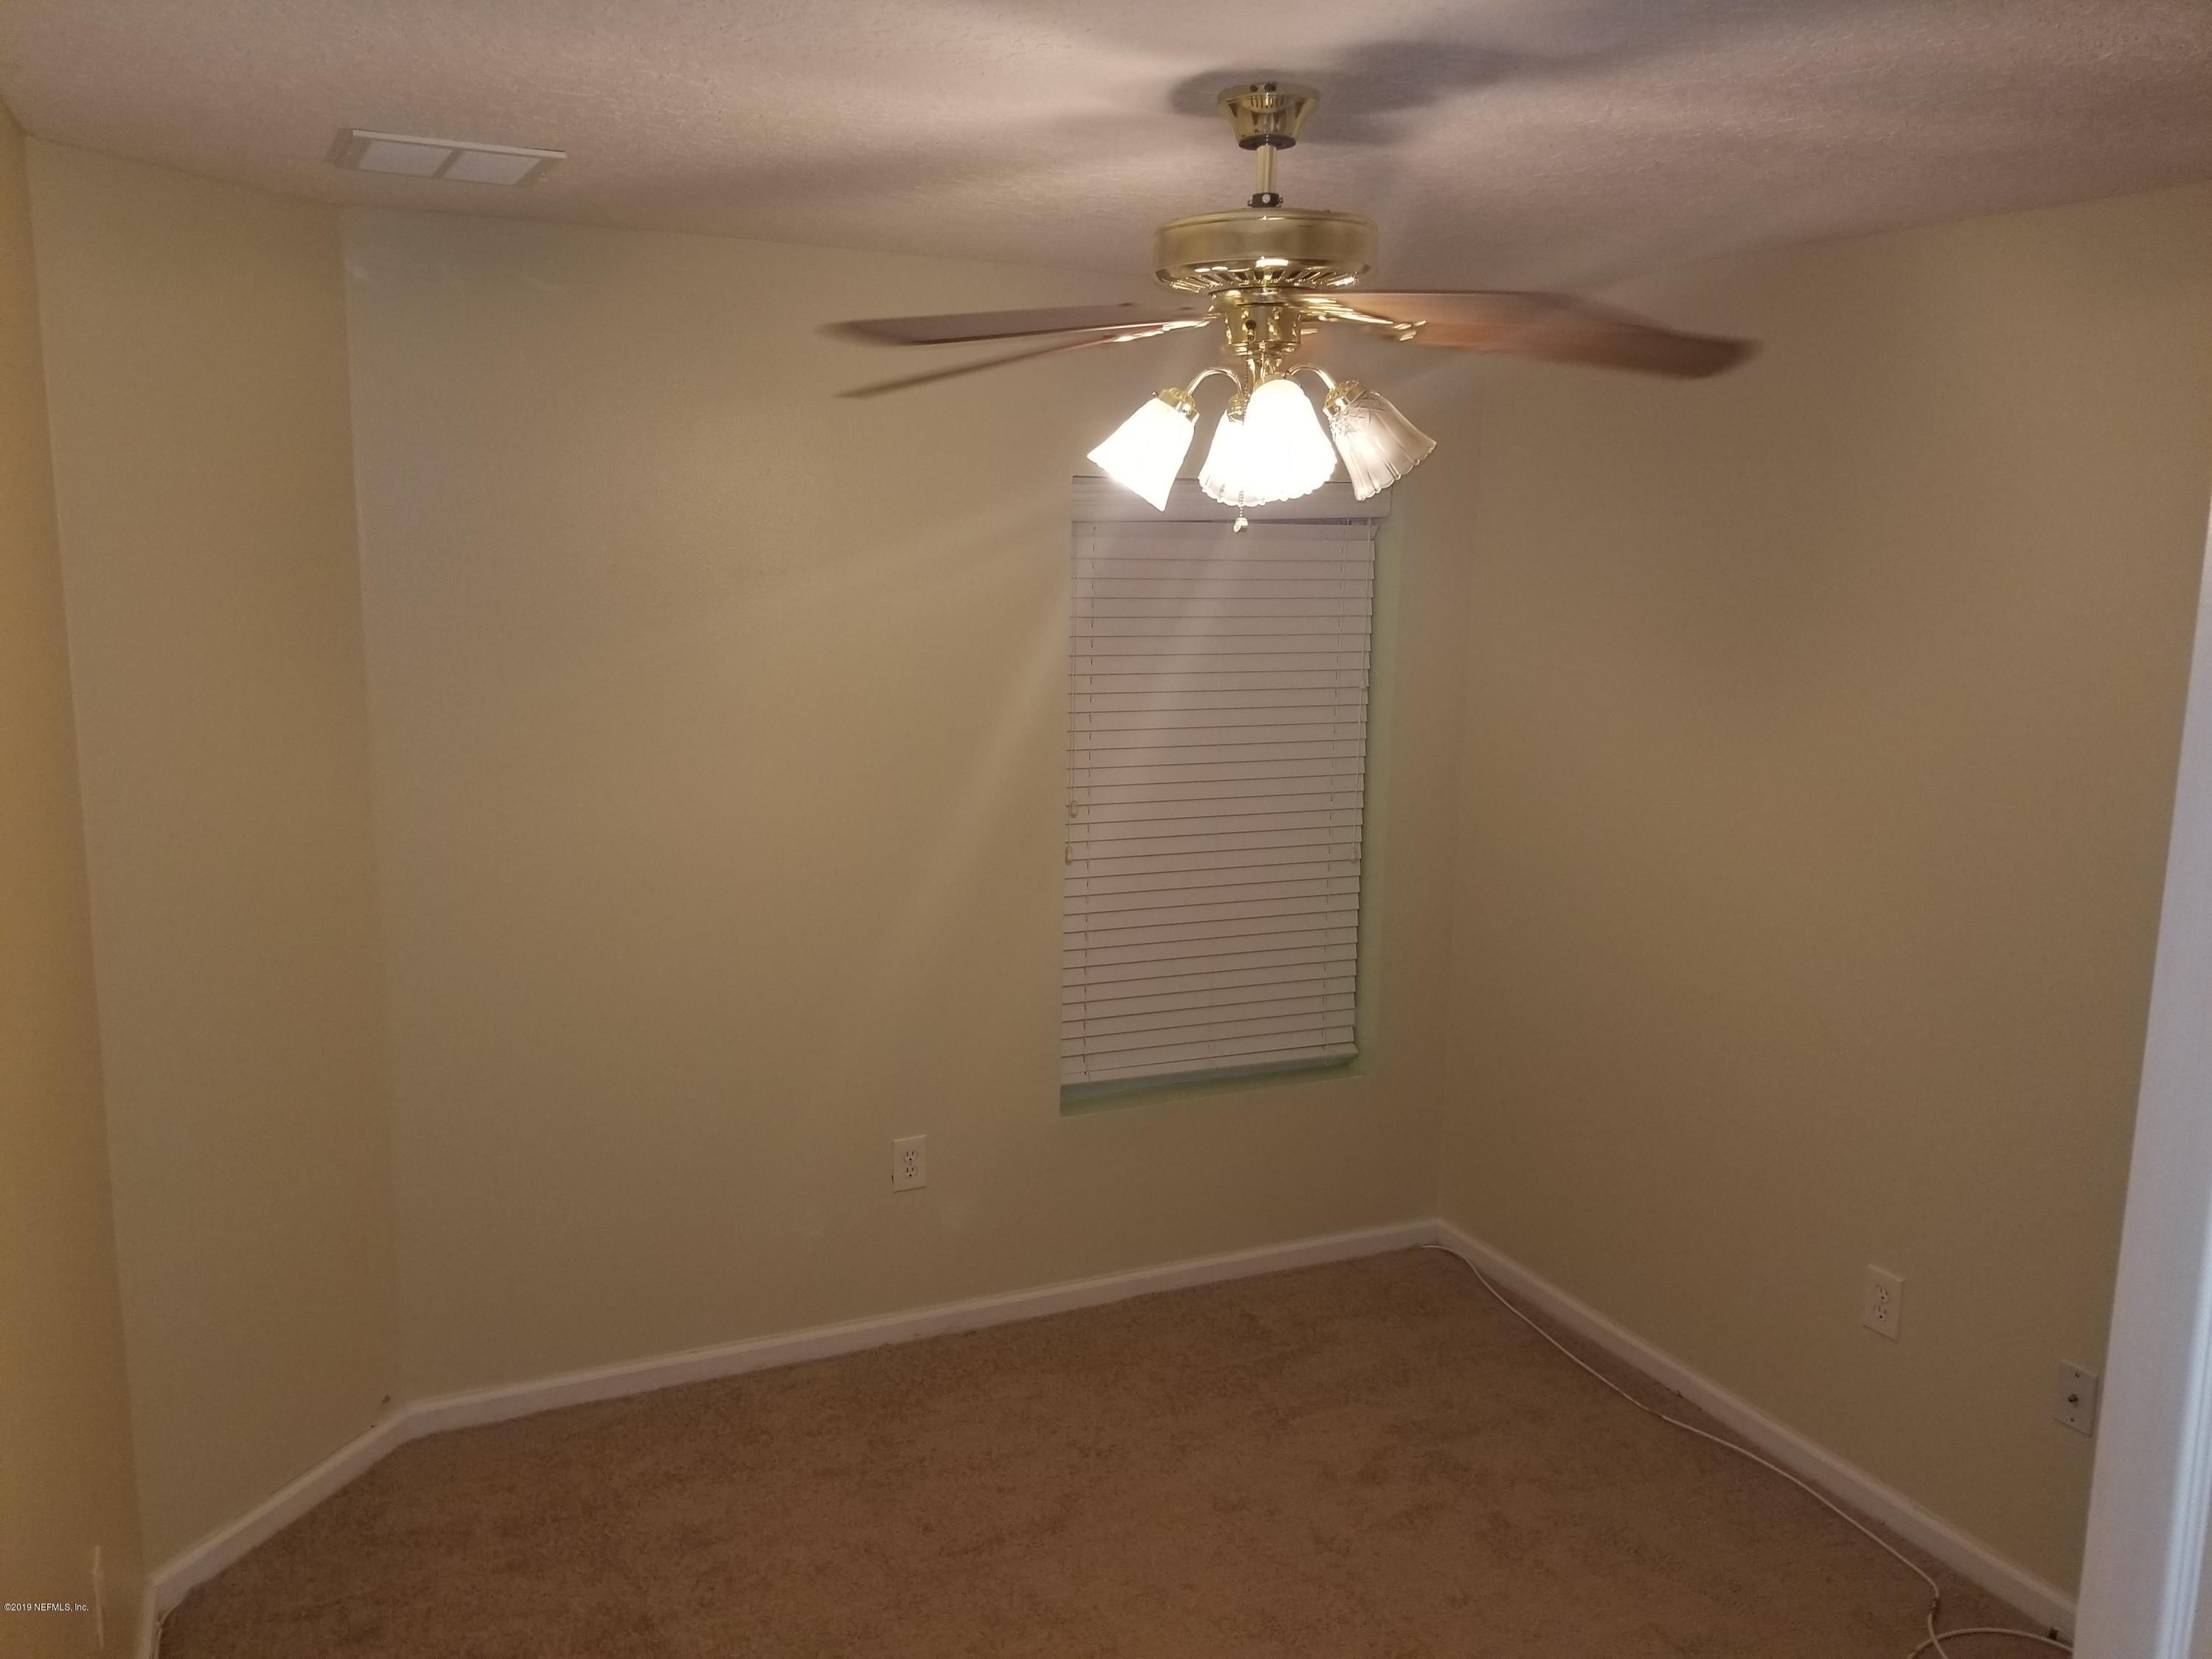 7920 MERRILL, JACKSONVILLE, FLORIDA 32277, 2 Bedrooms Bedrooms, ,2 BathroomsBathrooms,Condo,For sale,MERRILL,1019823